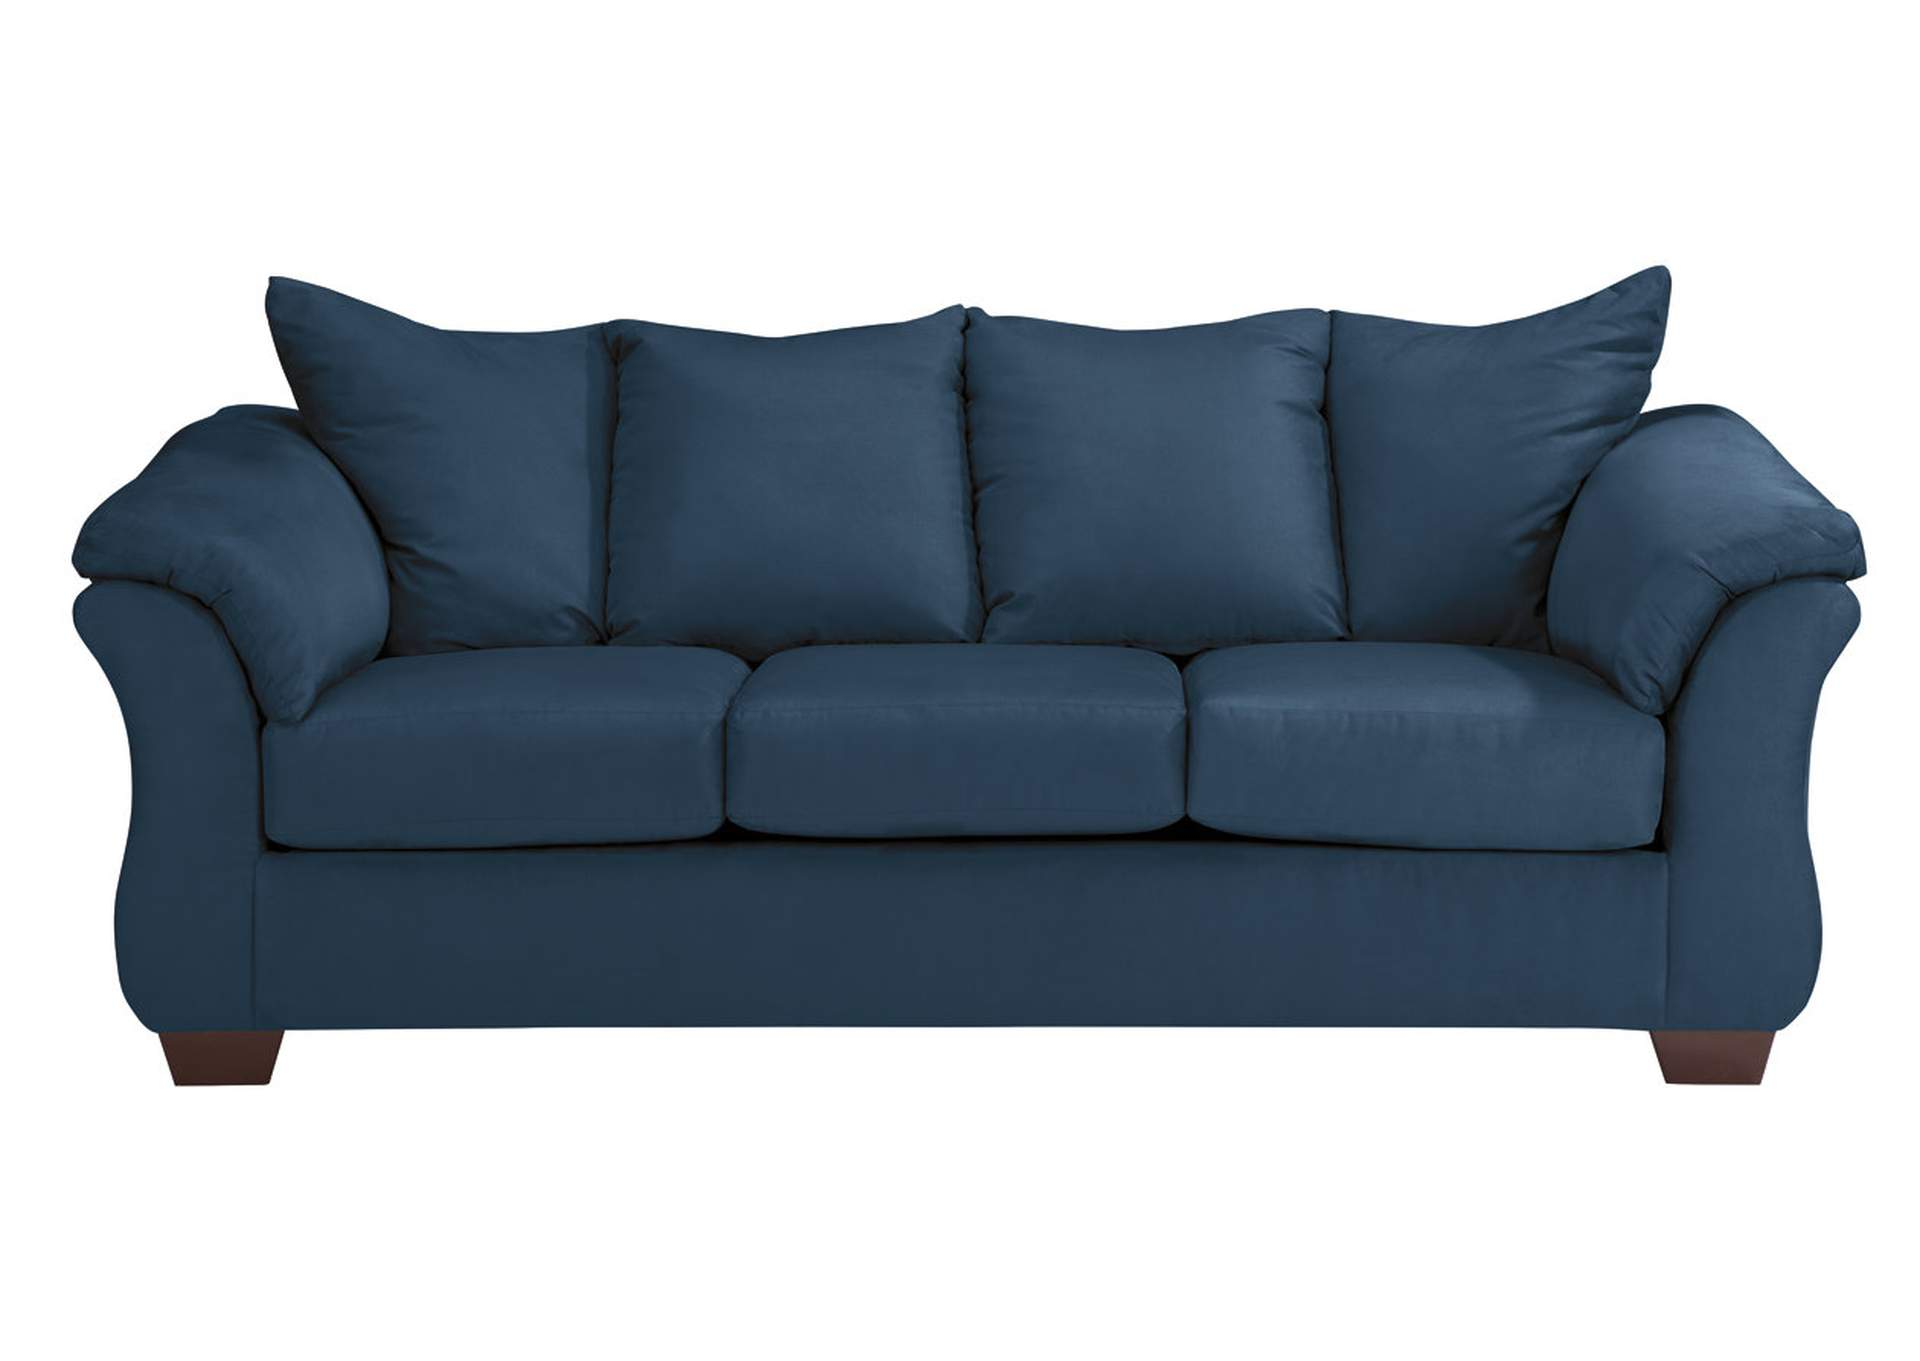 Darcy Blue Sofa,Signature Design By Ashley